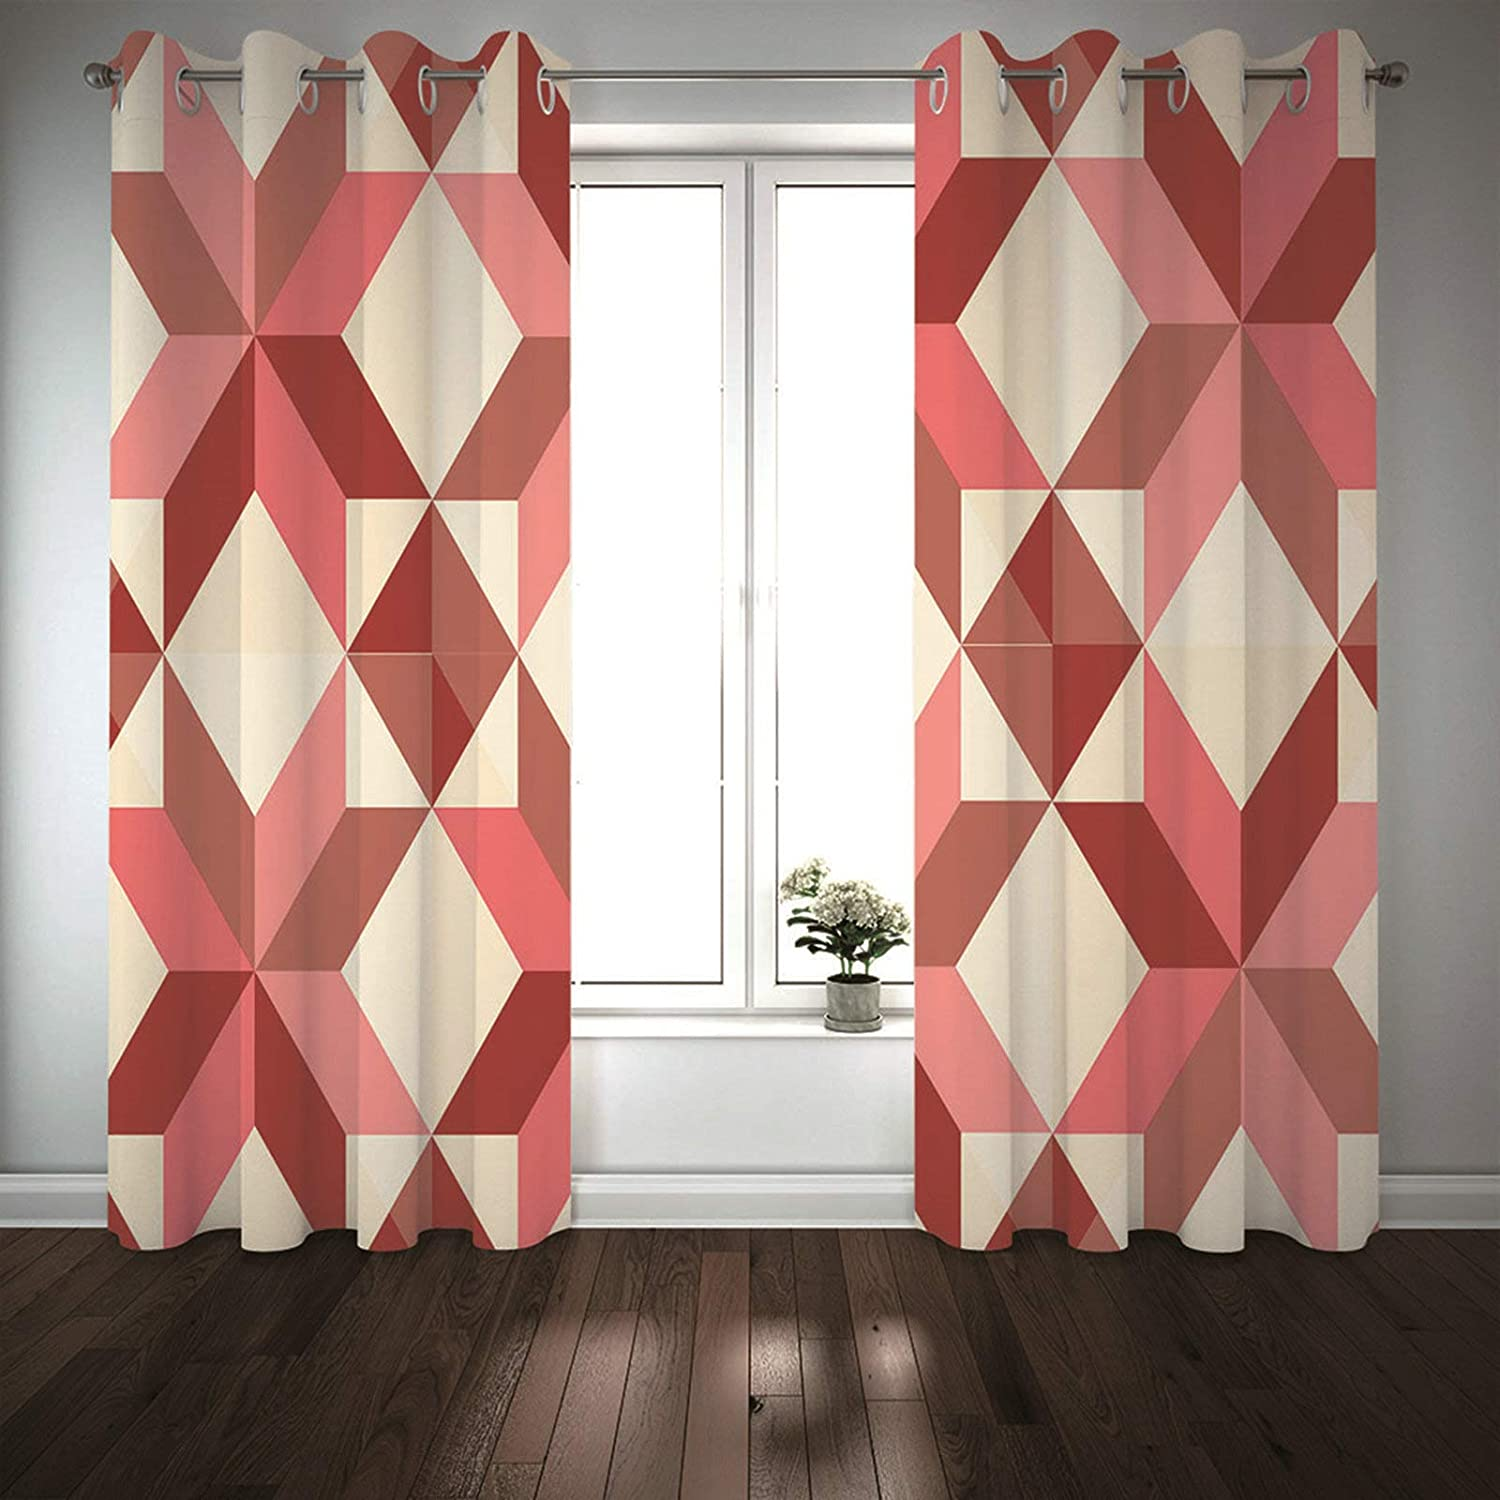 MoAndy Little Ranking TOP15 Girls Bedroom Curtains 2 Curt 45 x 52 Inch quality assurance Panels